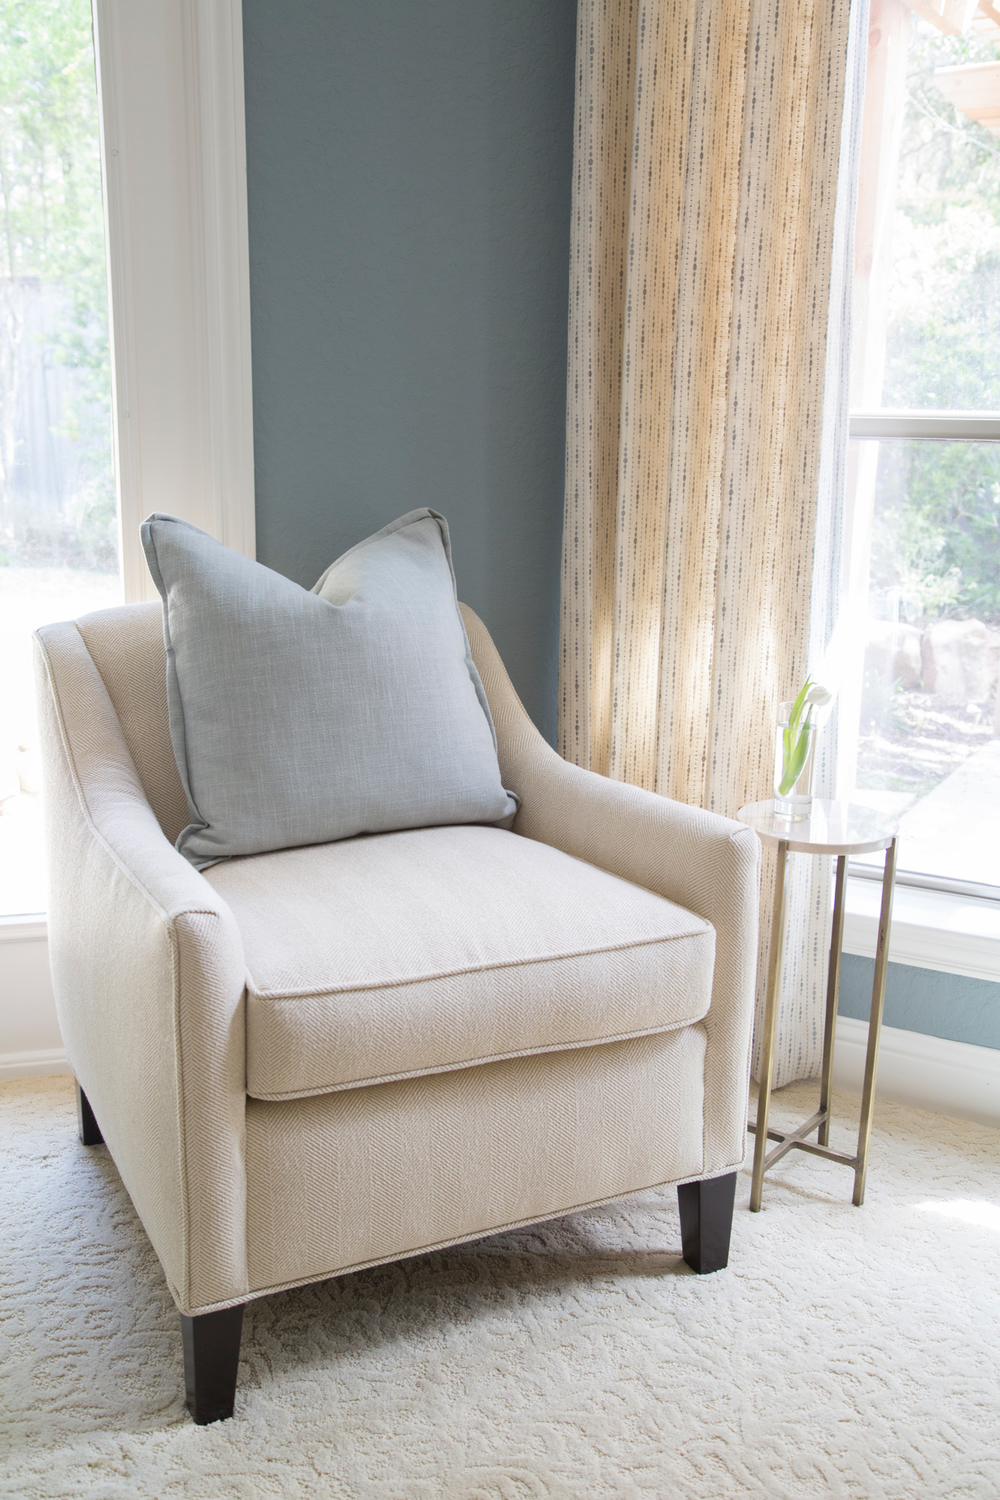 Master Bedroom Redo - Seating, side table, drapery